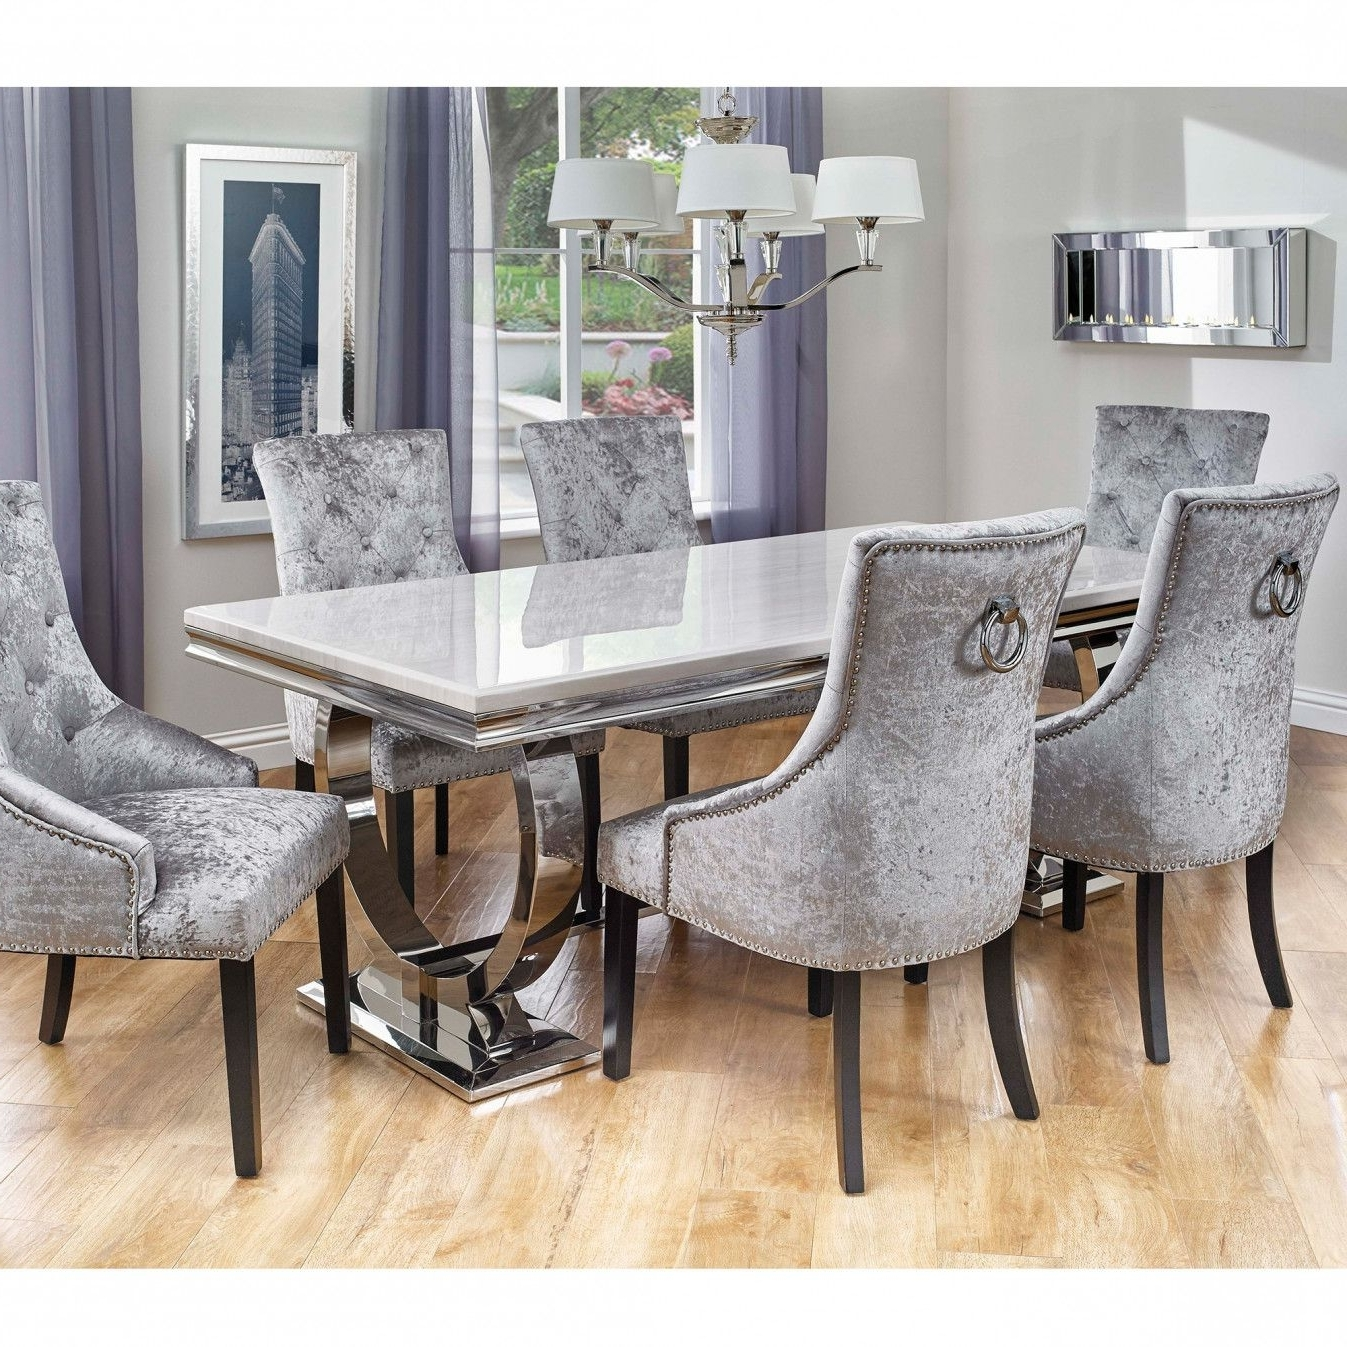 Pinterest Regarding Famous 6 Chair Dining Table Sets (View 19 of 25)